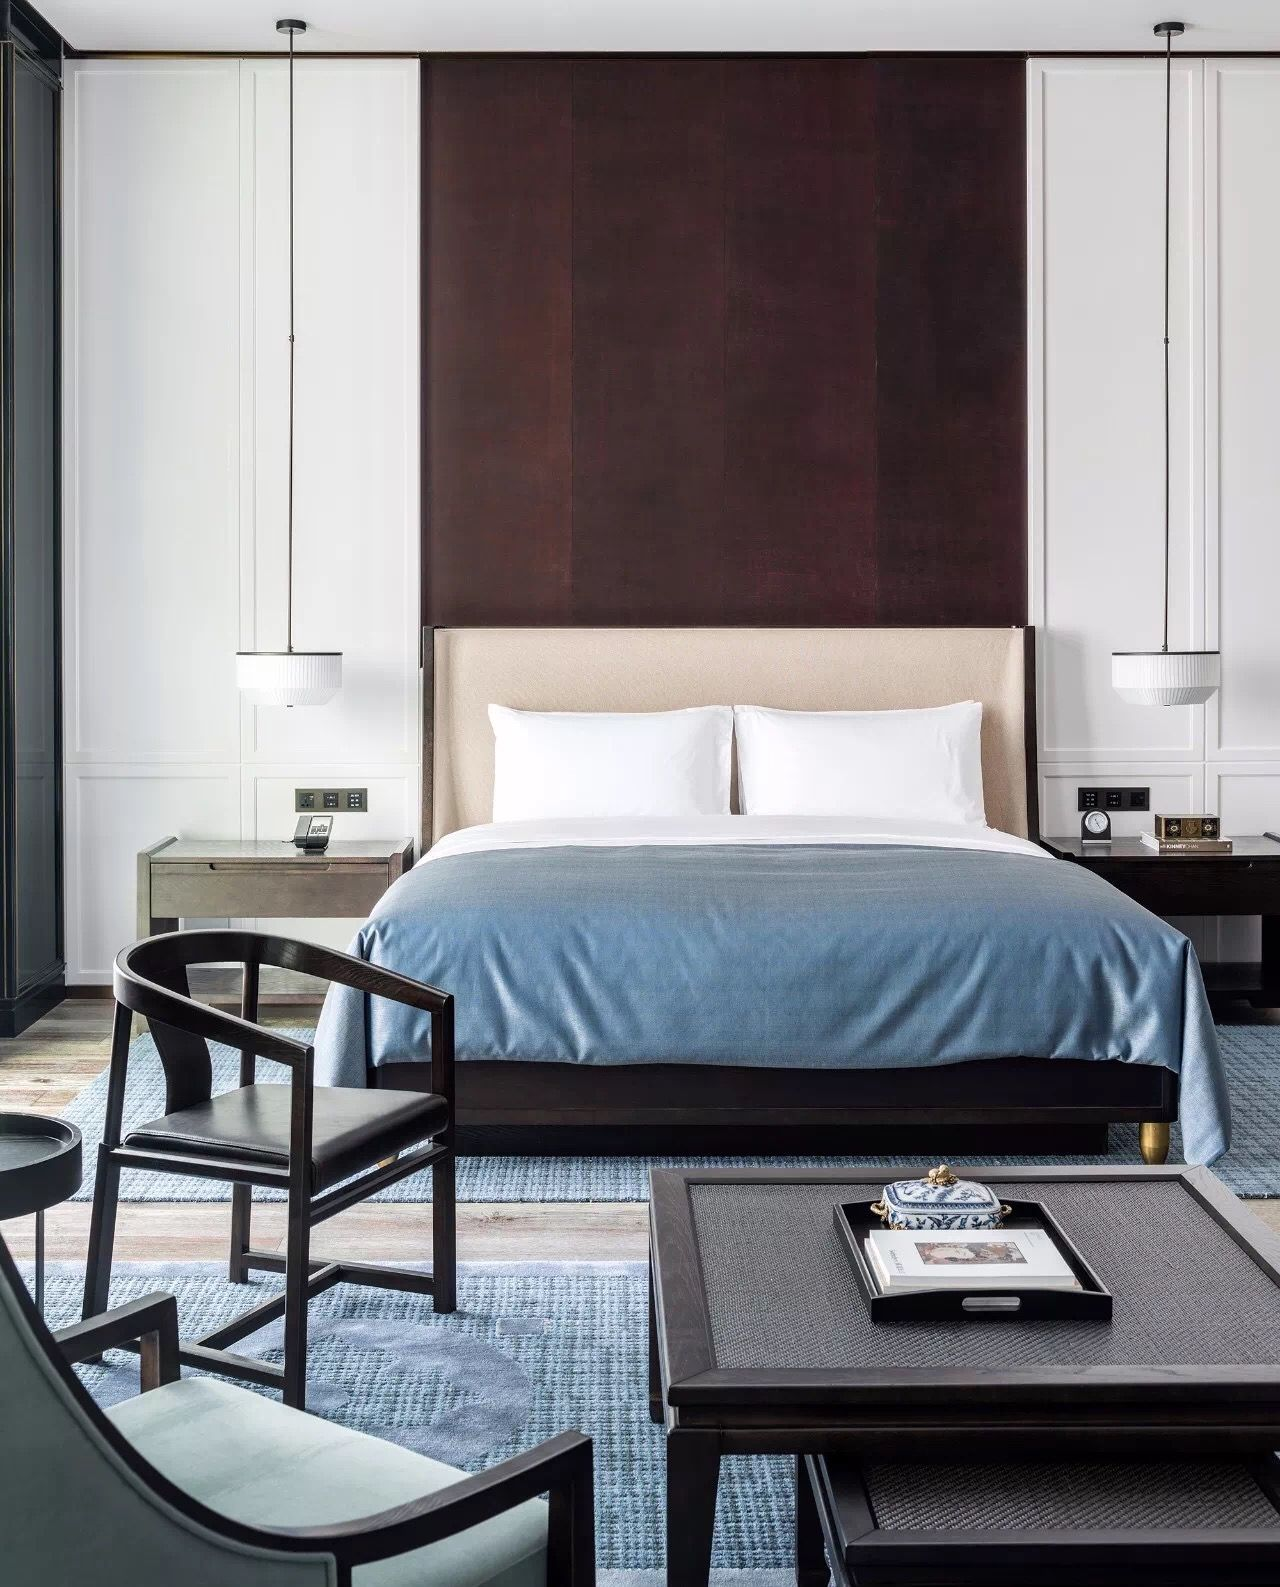 Master bedroom bed  Pin by douboo on BED  Pinterest  Bedrooms Bed room and Room